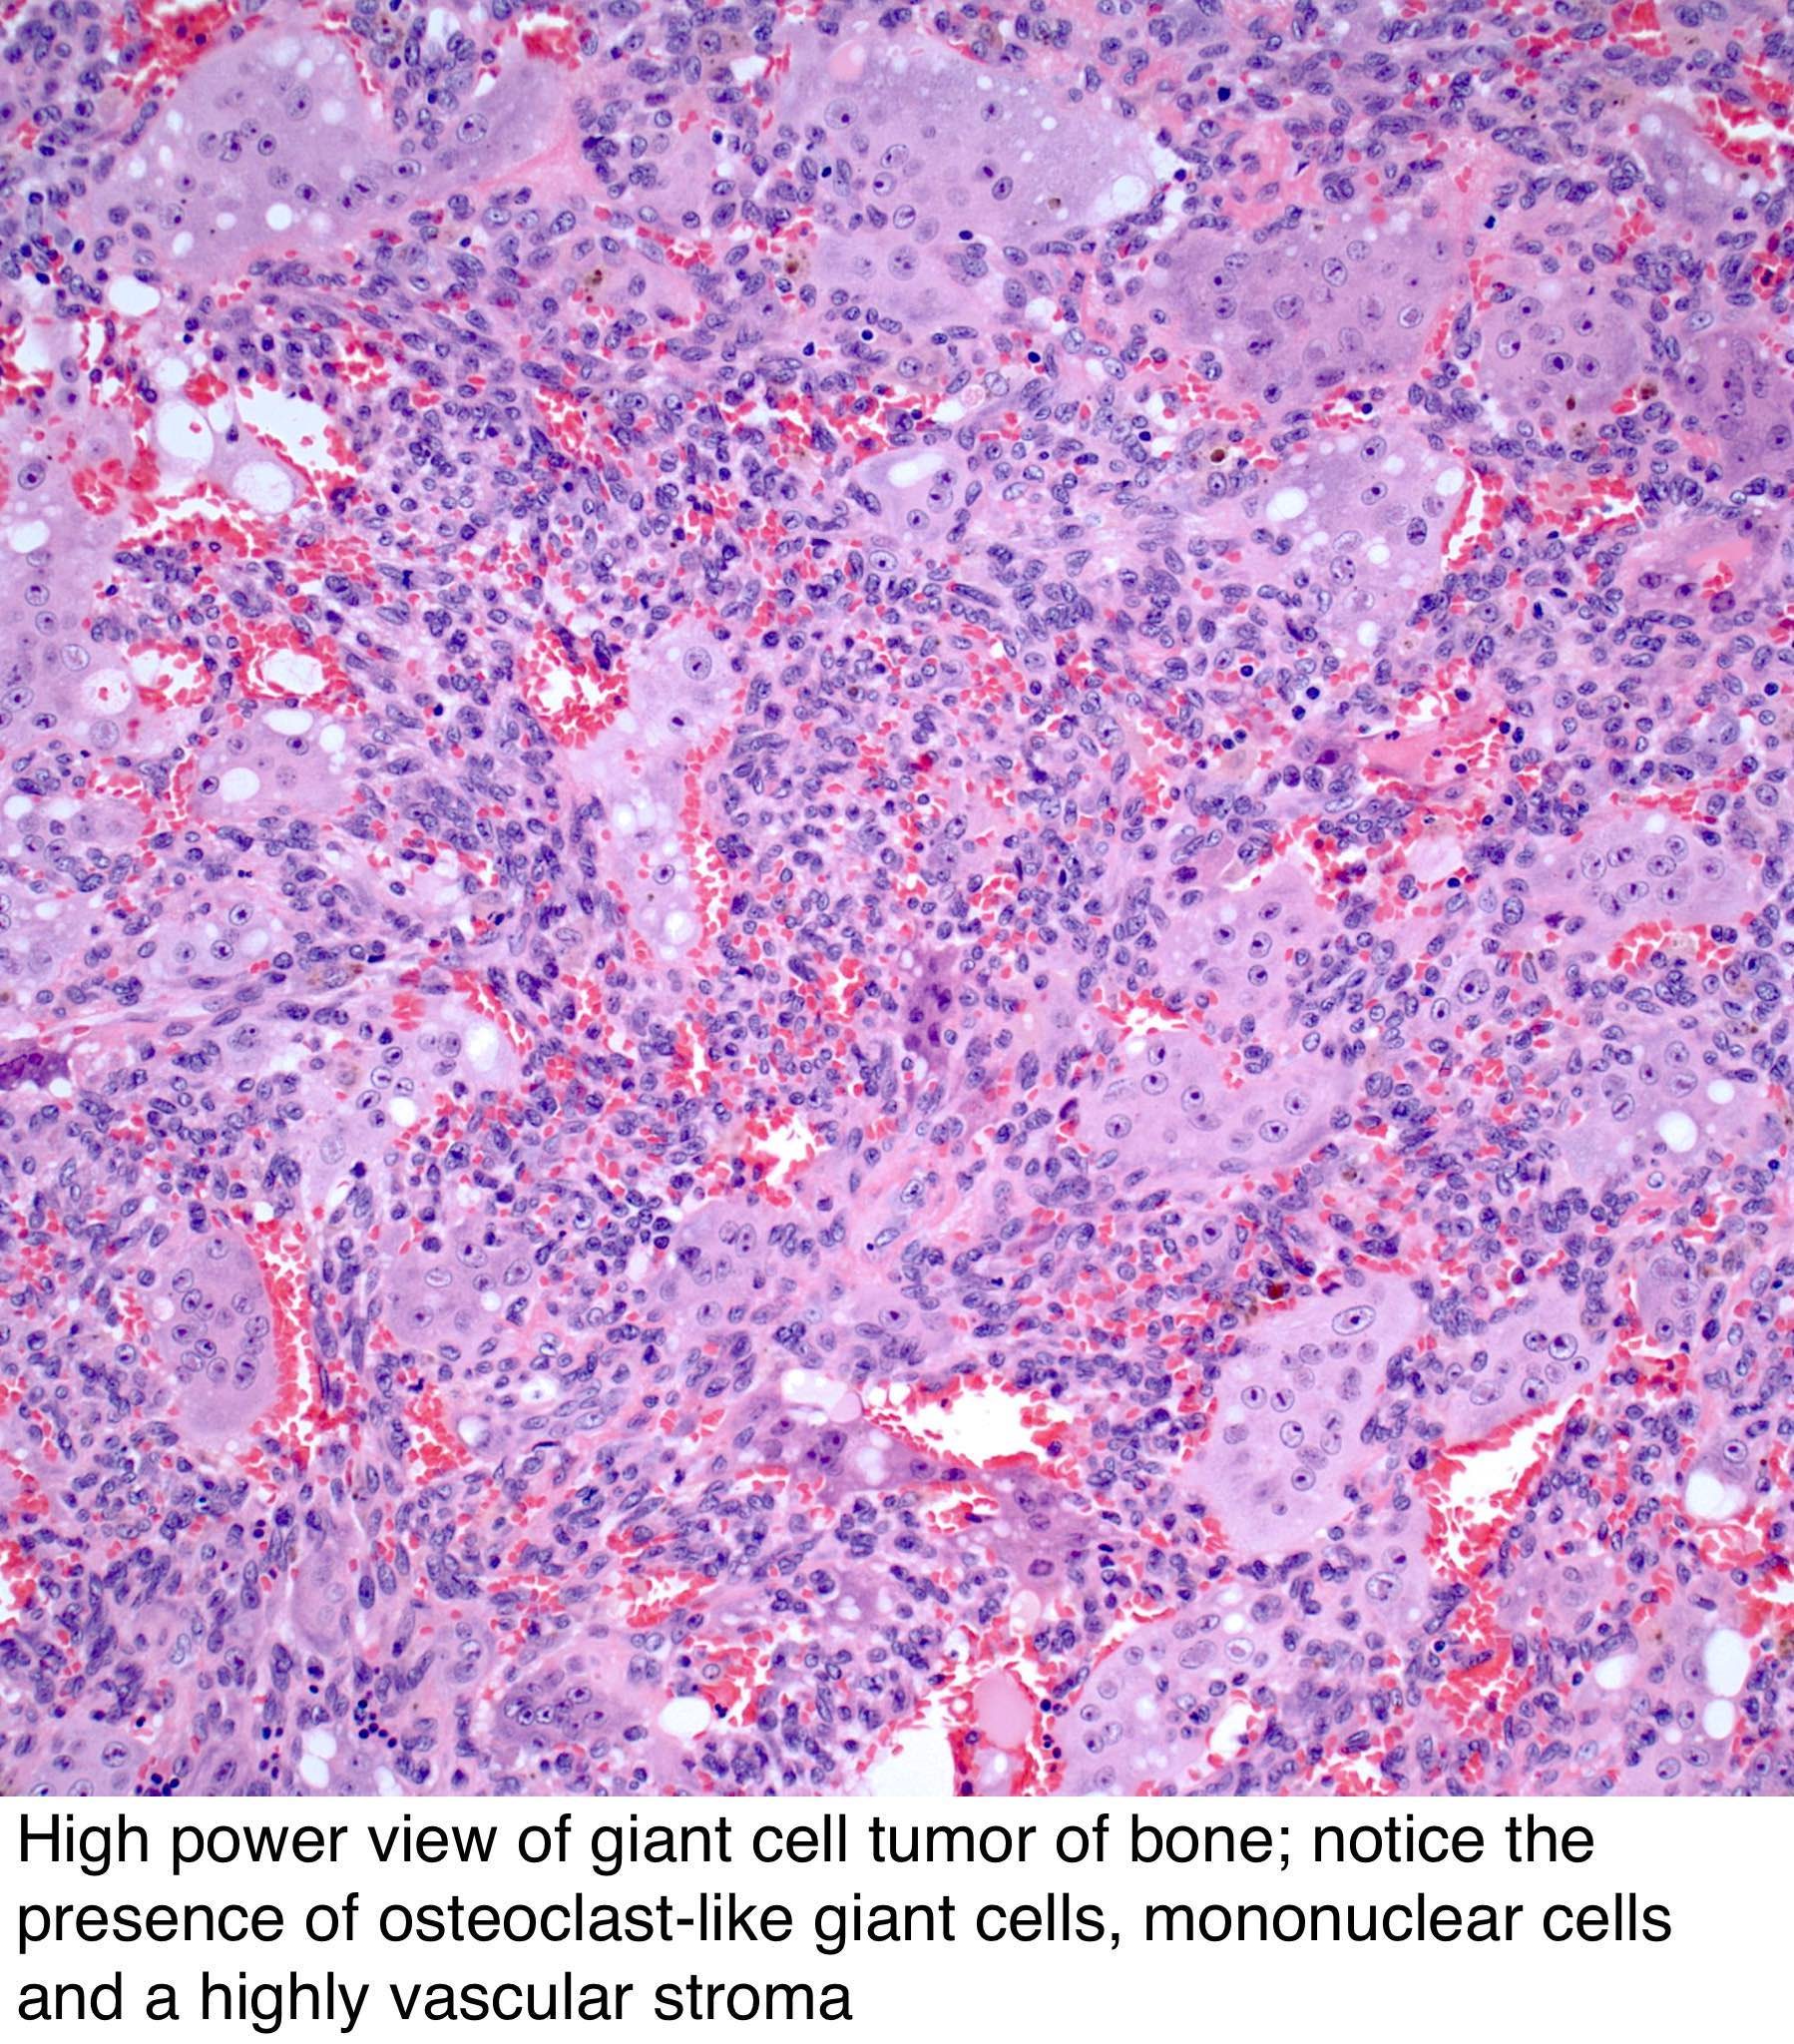 Pathology Outlines - Giant cell tumor of bone